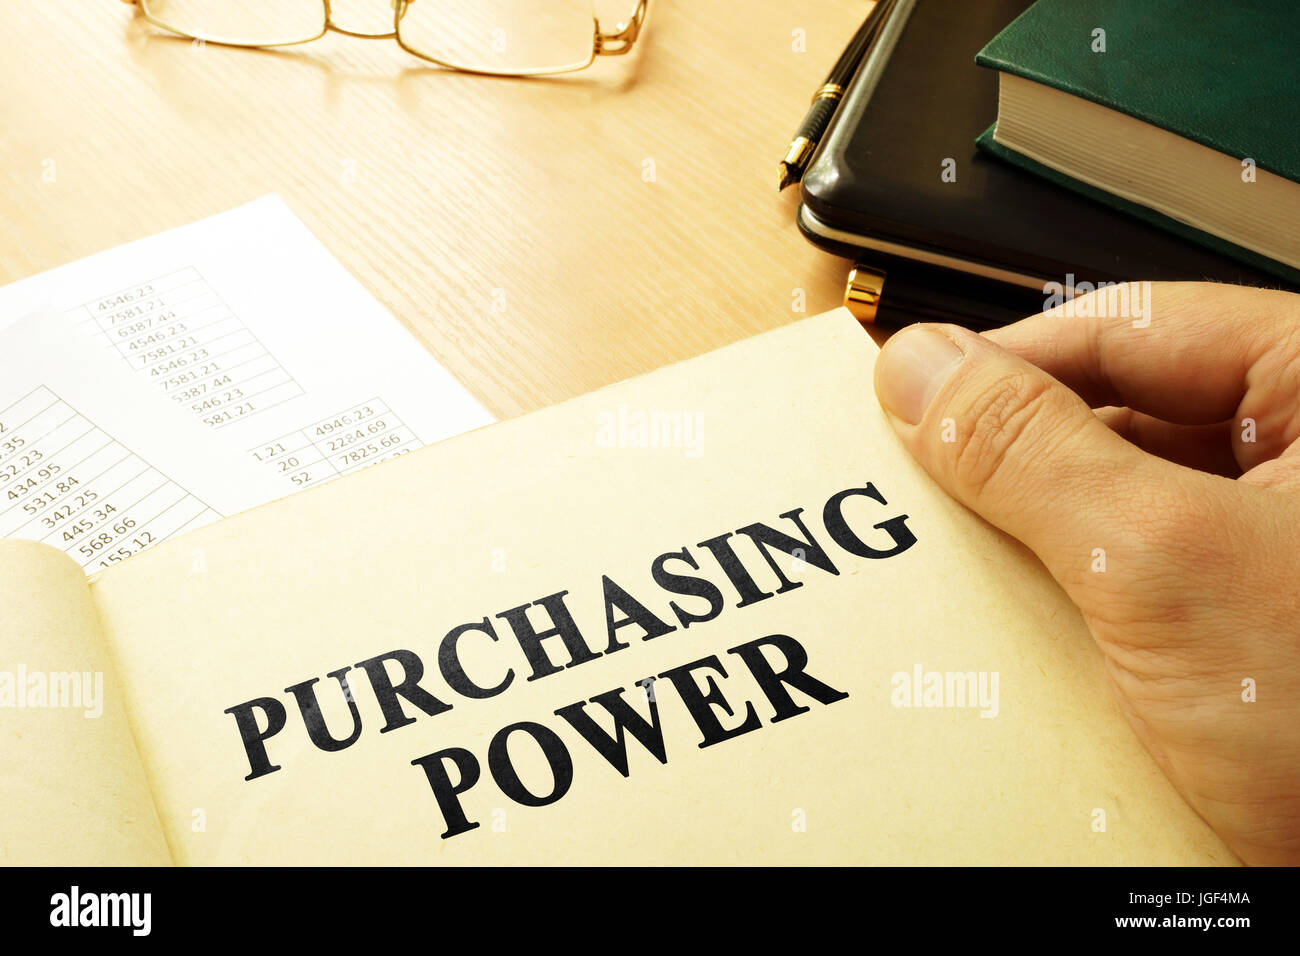 Book with page about purchasing power. Business concept. - Stock Image